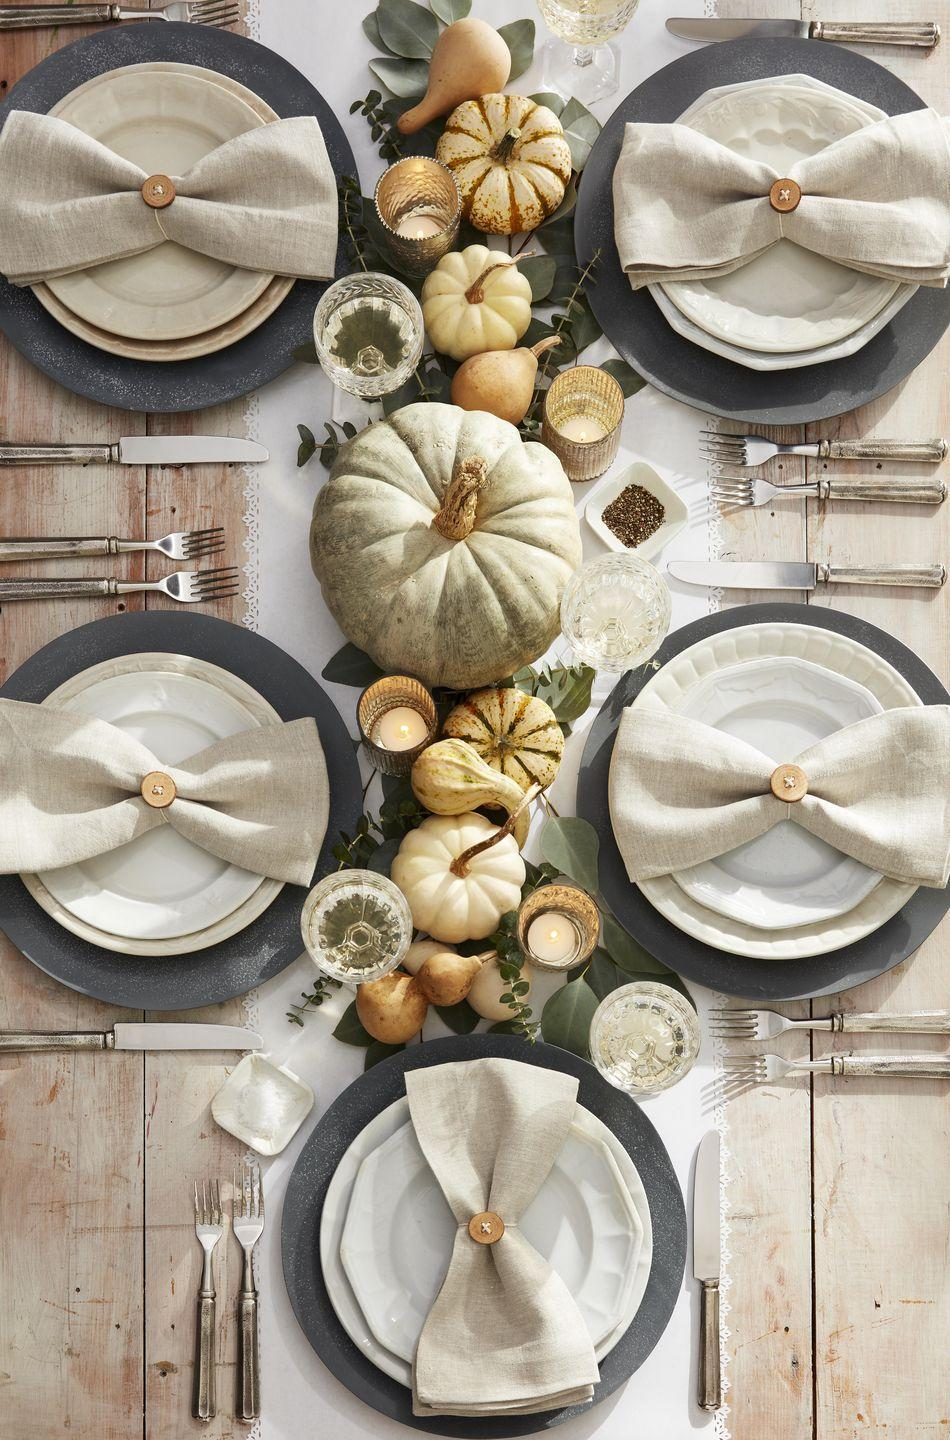 """<p>Neutral tones, including whitewashed pumpkins and dried gourds, are layered on top of a smattering of green eucalyptus leaves to create this sophisticated, neutral-toned centerpiece. Bonus: Thread twine through wood buttons and use to tie up linen napkins. <br></p><p><a class=""""link rapid-noclick-resp"""" href=""""https://www.amazon.com/Pure-Linen-Oversized-Napkins-Pack/dp/B00HFSNB3S/ref=sr_1_5?dchild=1&keywords=linen+napkins&qid=1629988335&sr=8-5&tag=syn-yahoo-20&ascsubtag=%5Bartid%7C10050.g.2130%5Bsrc%7Cyahoo-us"""" rel=""""nofollow noopener"""" target=""""_blank"""" data-ylk=""""slk:SHOP NAPKINS"""">SHOP NAPKINS</a></p>"""